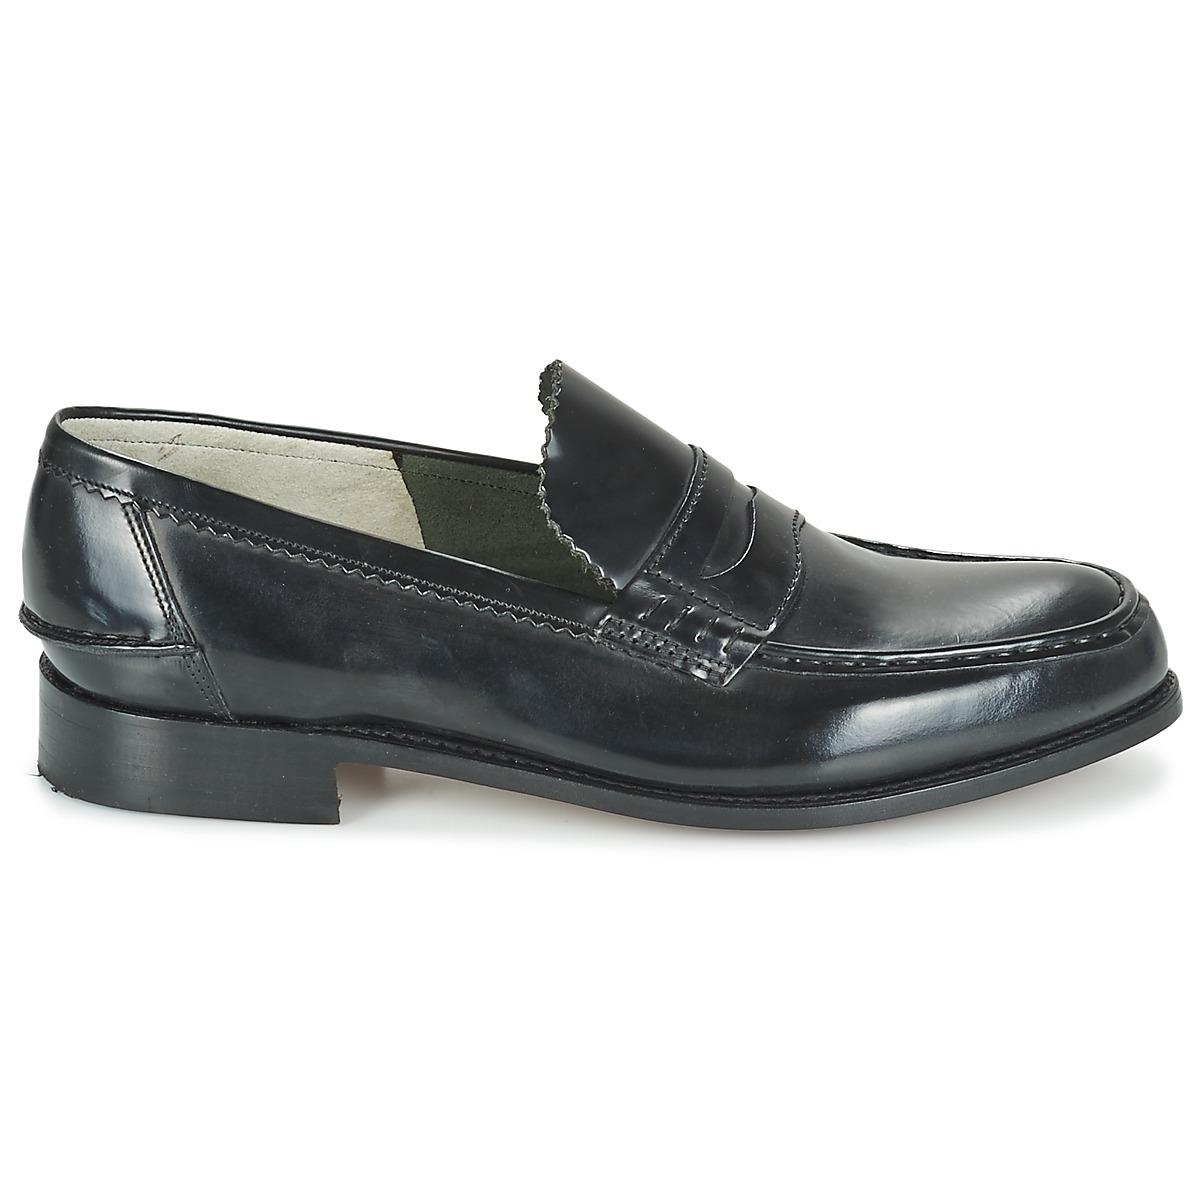 4637db66bca Barker - Black Caruso Loafers   Casual Shoes for Men - Lyst. View fullscreen